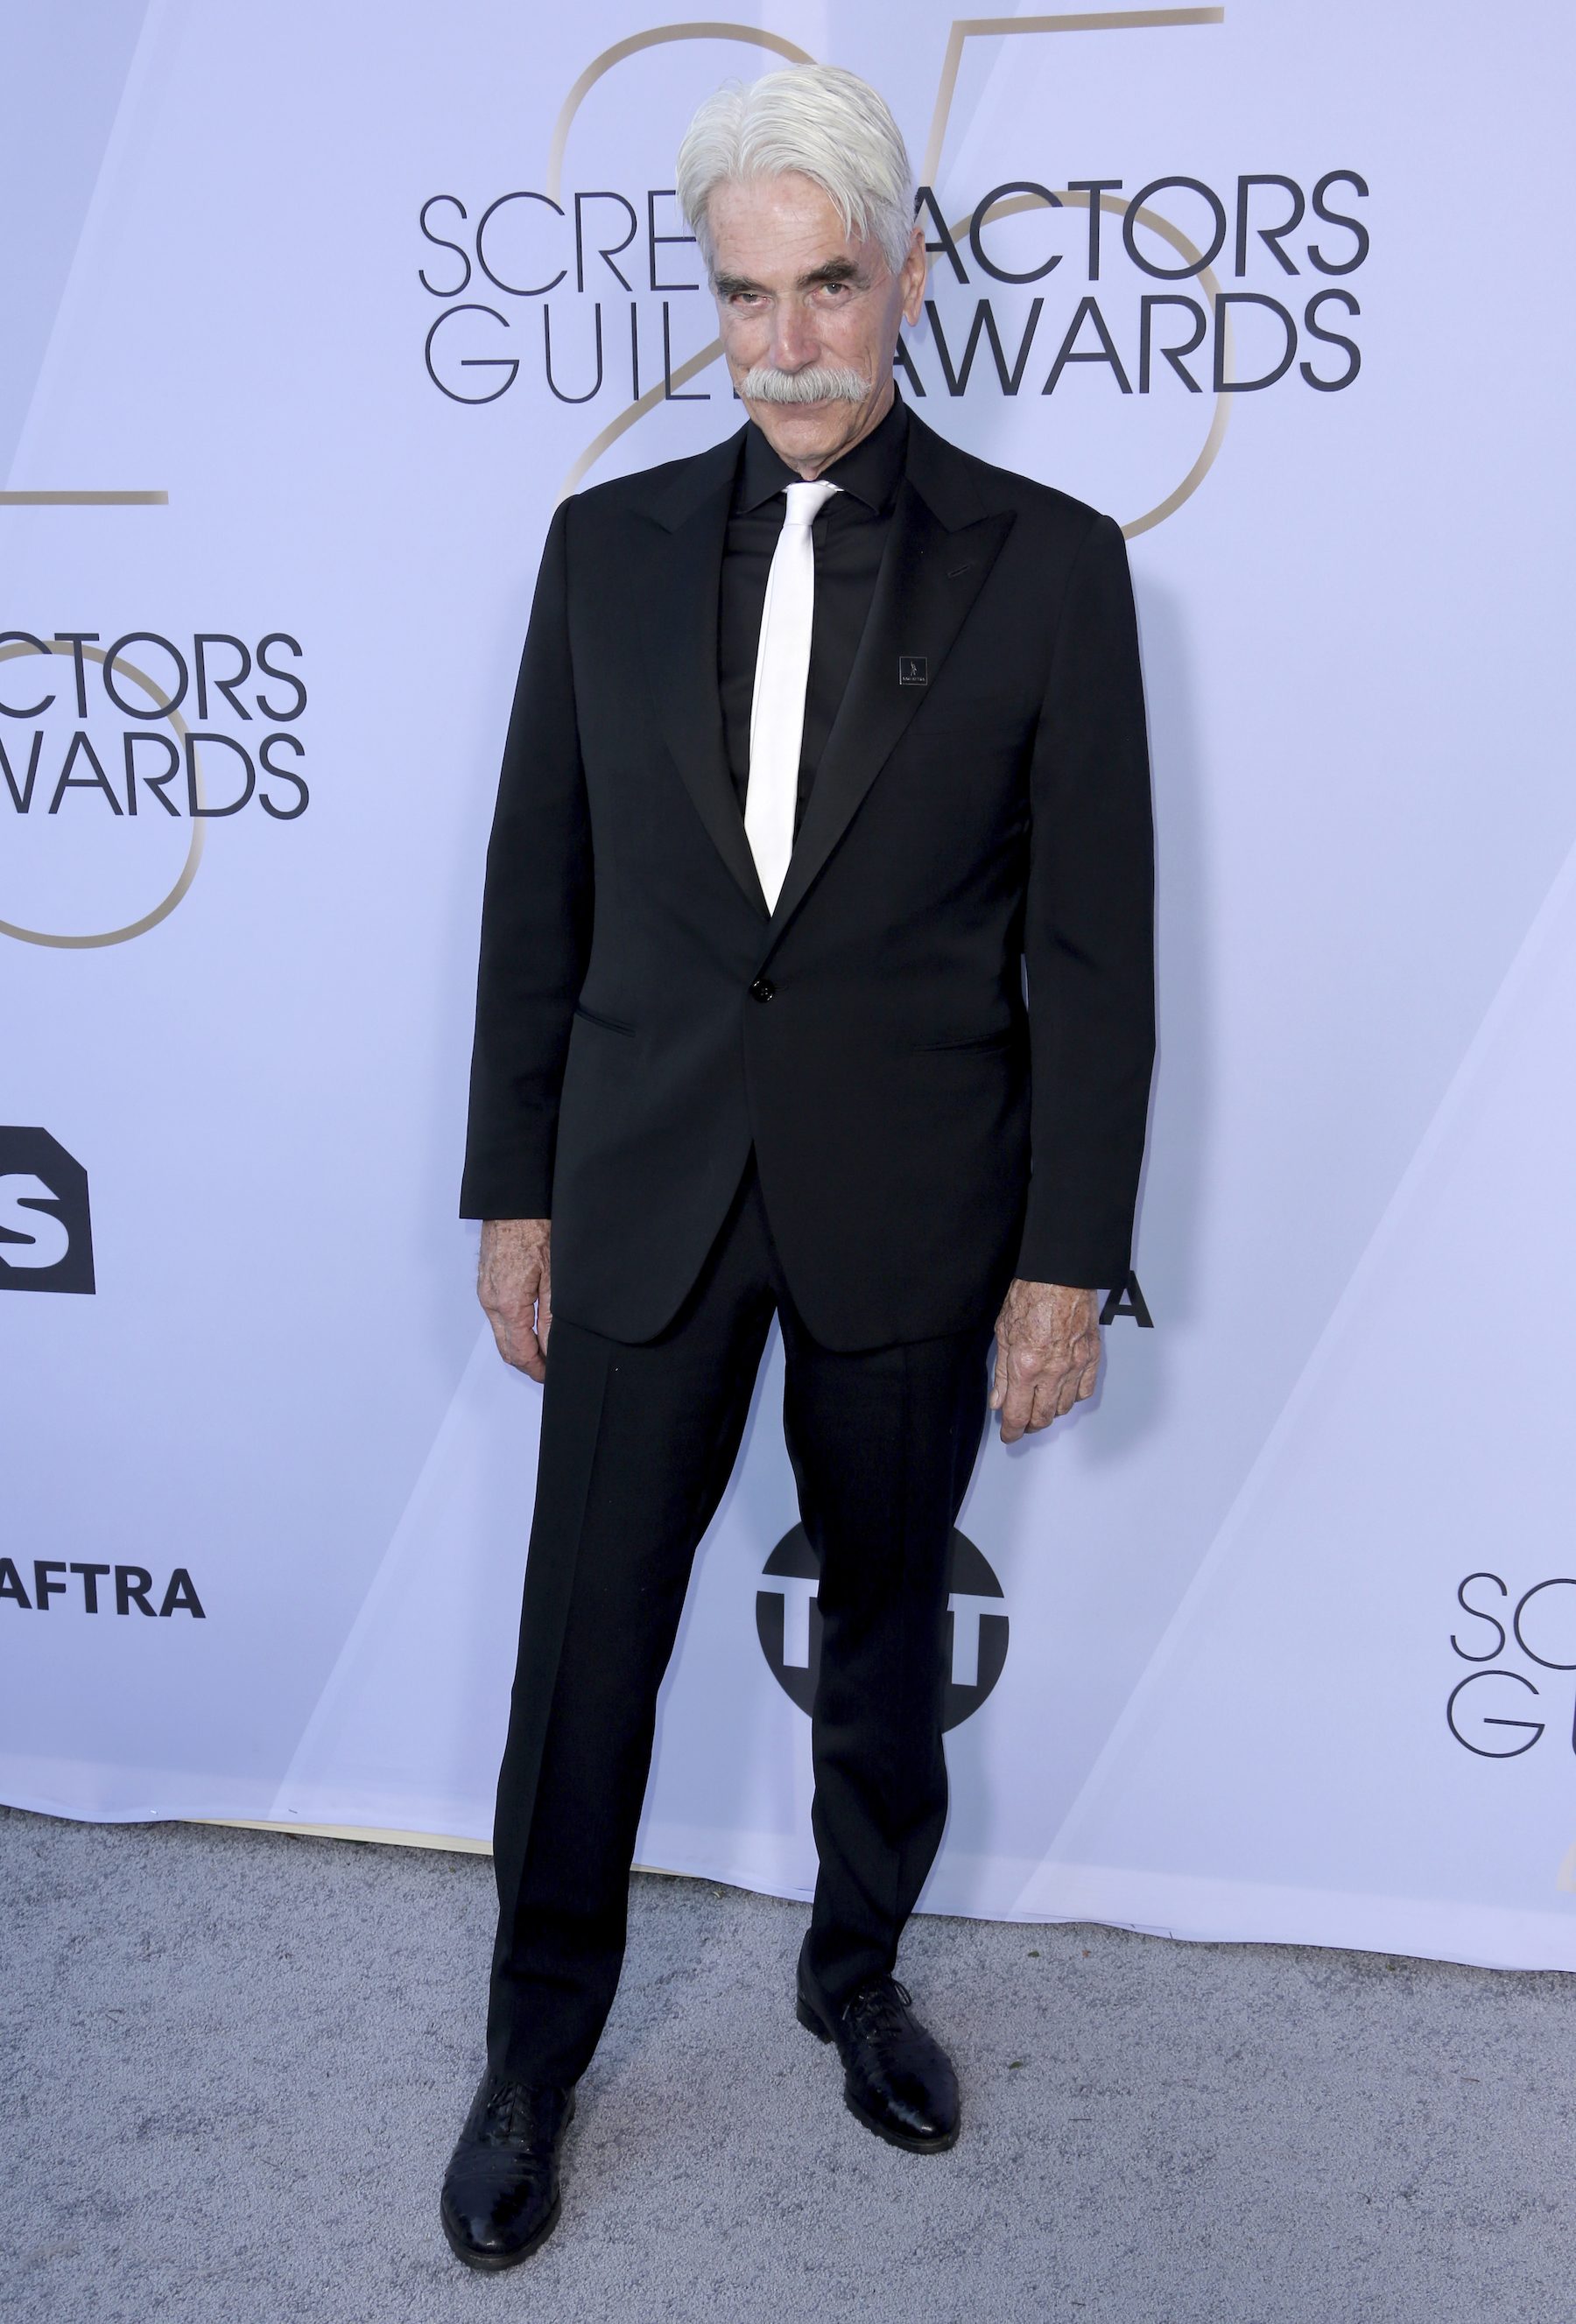 <div class='meta'><div class='origin-logo' data-origin='AP'></div><span class='caption-text' data-credit='Willy Sanjuan/Invision/AP'>Sam Elliott arrives at the 25th annual Screen Actors Guild Awards at the Shrine Auditorium & Expo Hall on Sunday, Jan. 27, 2019, in Los Angeles.</span></div>